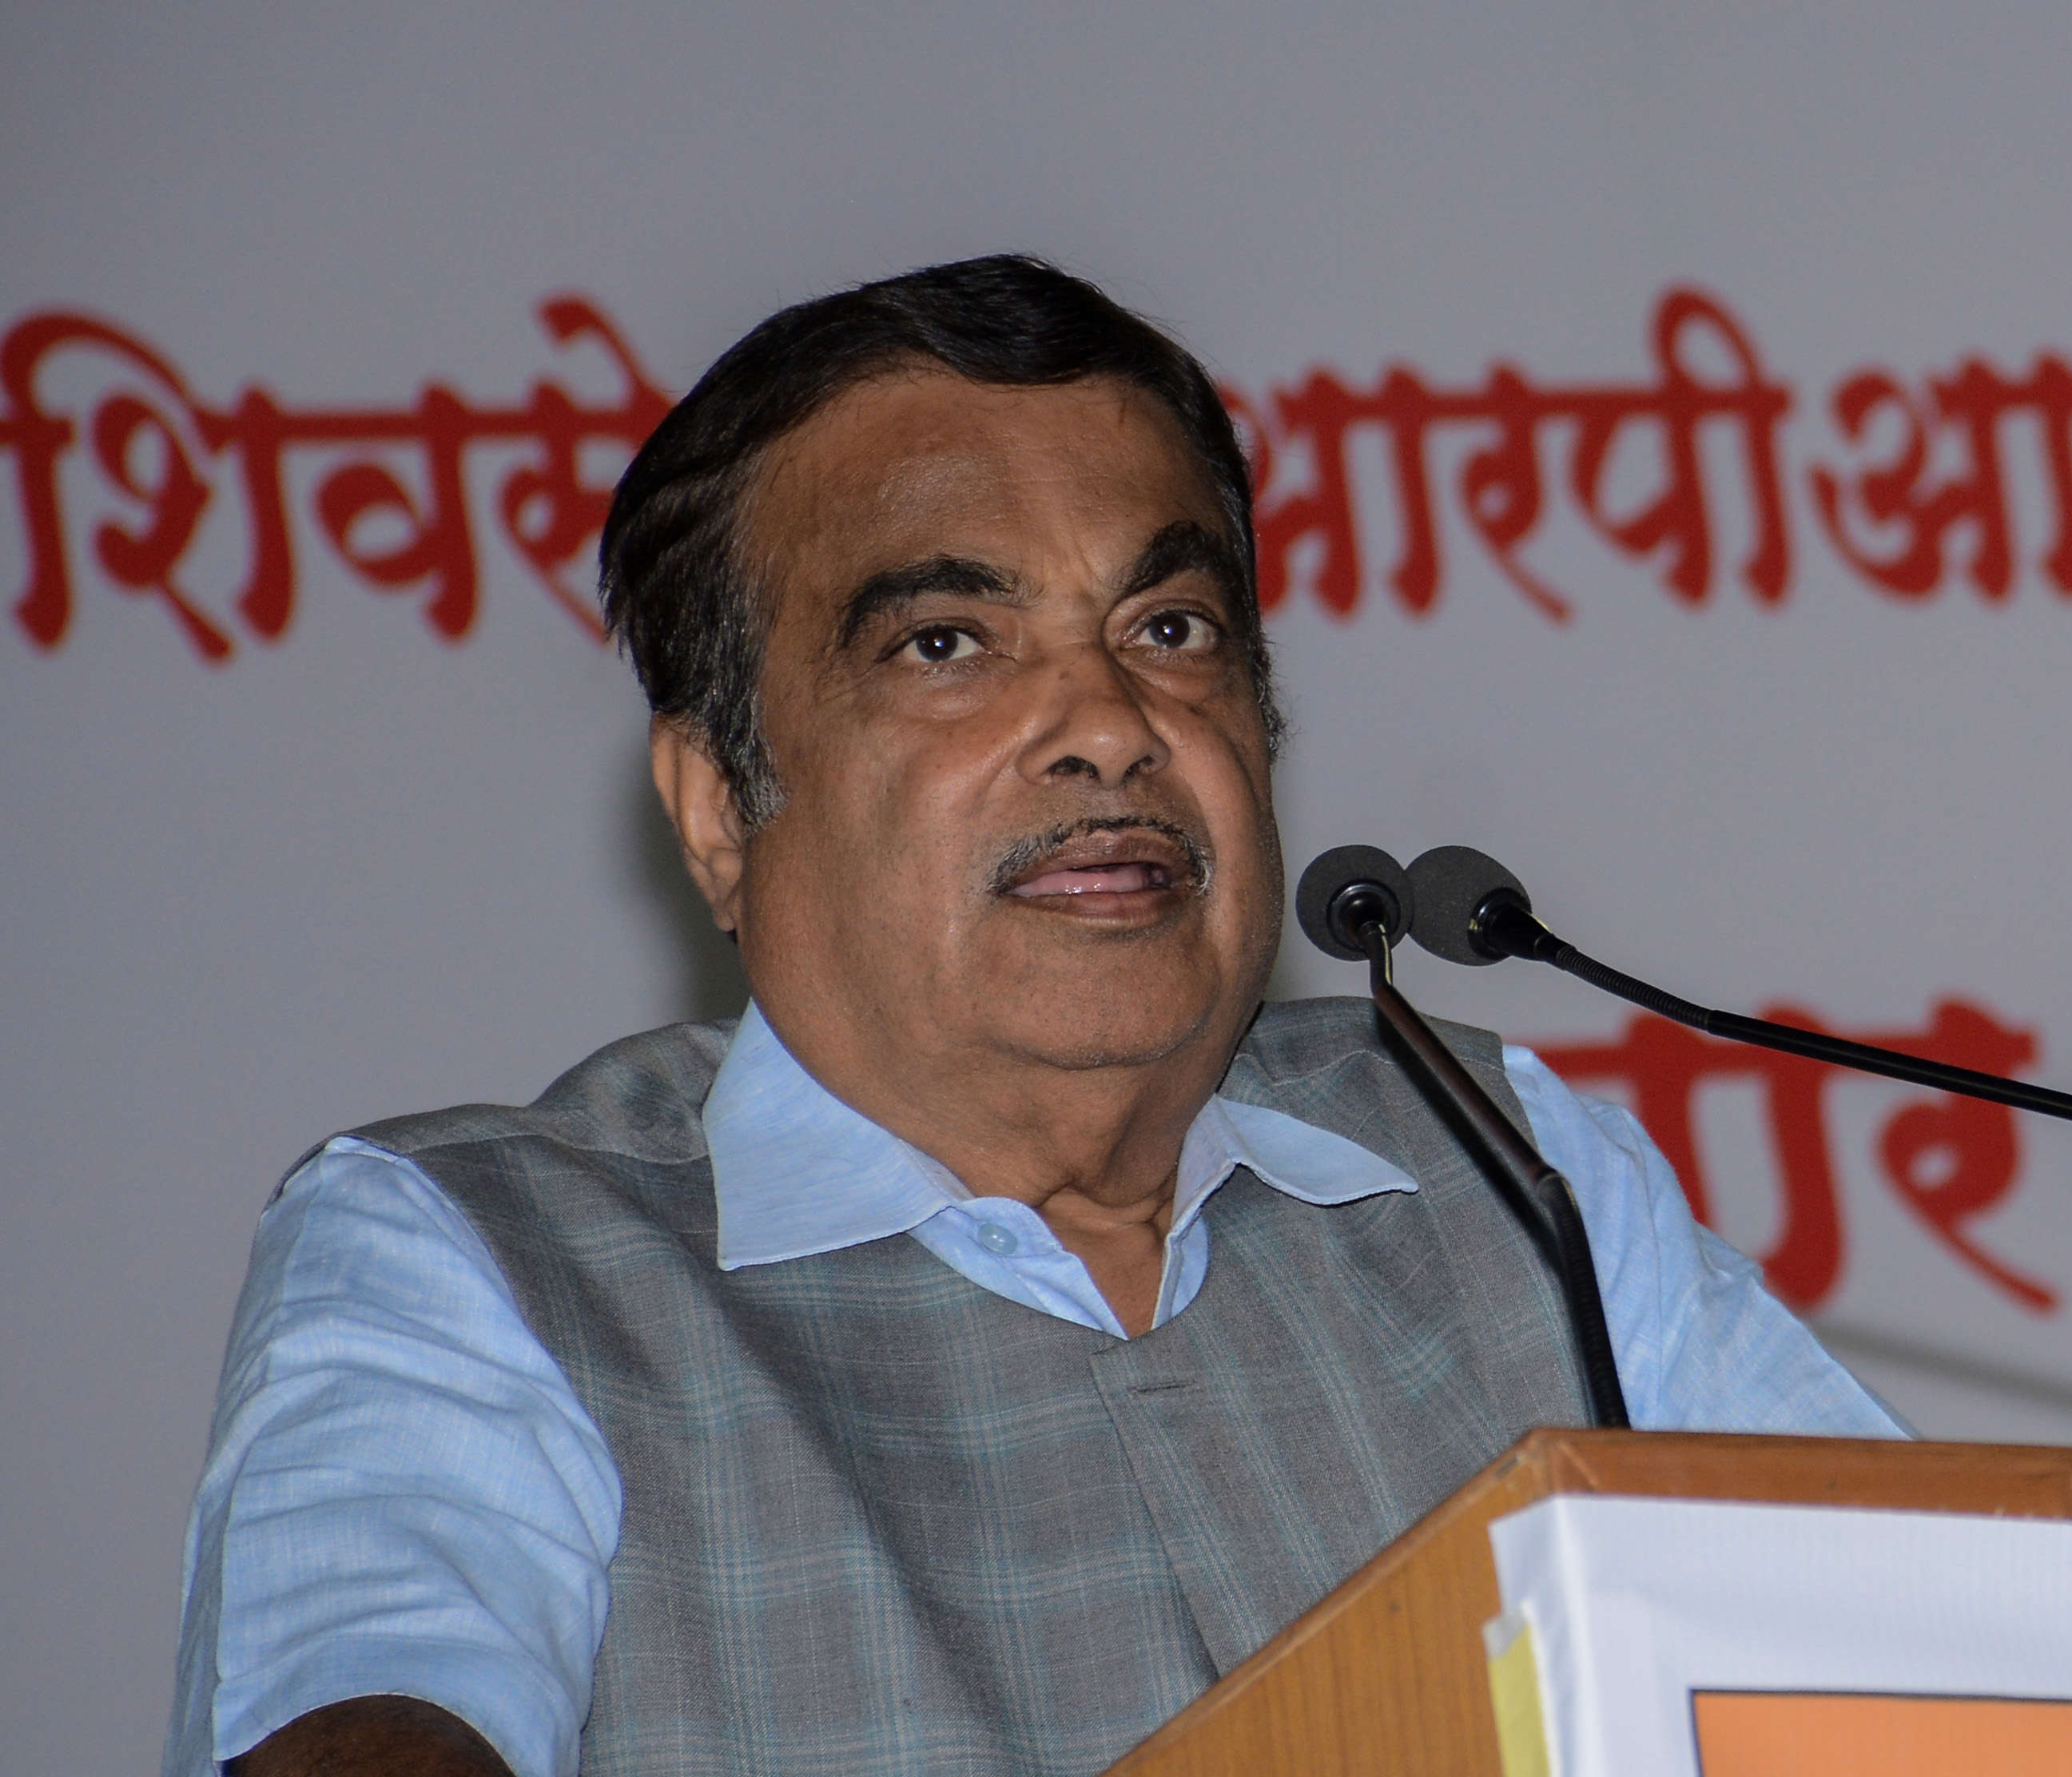 Slide 11 of 31: PUNE, INDIA - APRIL 20: Union Minister Nitin Gadkari during a public rally for Pune BJP candidate Girish Bapat at Kothrud, on April 20, 2019 in Pune, India. Barely three days after Prime Minister Narendra Modi said he was being targeted because of his backward caste, senior Union minister and Bharatiya Janata Party (BJP) leader Nitin Gadkari on Saturday said that asking for votes on the basis of caste and religion is not right. Those who feel ashamed to seek votes on the basis of performance take support of caste, religion and language for getting votes, Gadkari said, while addressing an evening rally in support of Girish Bapat, the BJPs candidate for the Pune Lok Sabha seat. He criticised political leaders for seeking votes on the basis of caste and religion. (Photo by Milind Saurkar/Hindustan Times via Getty Images)